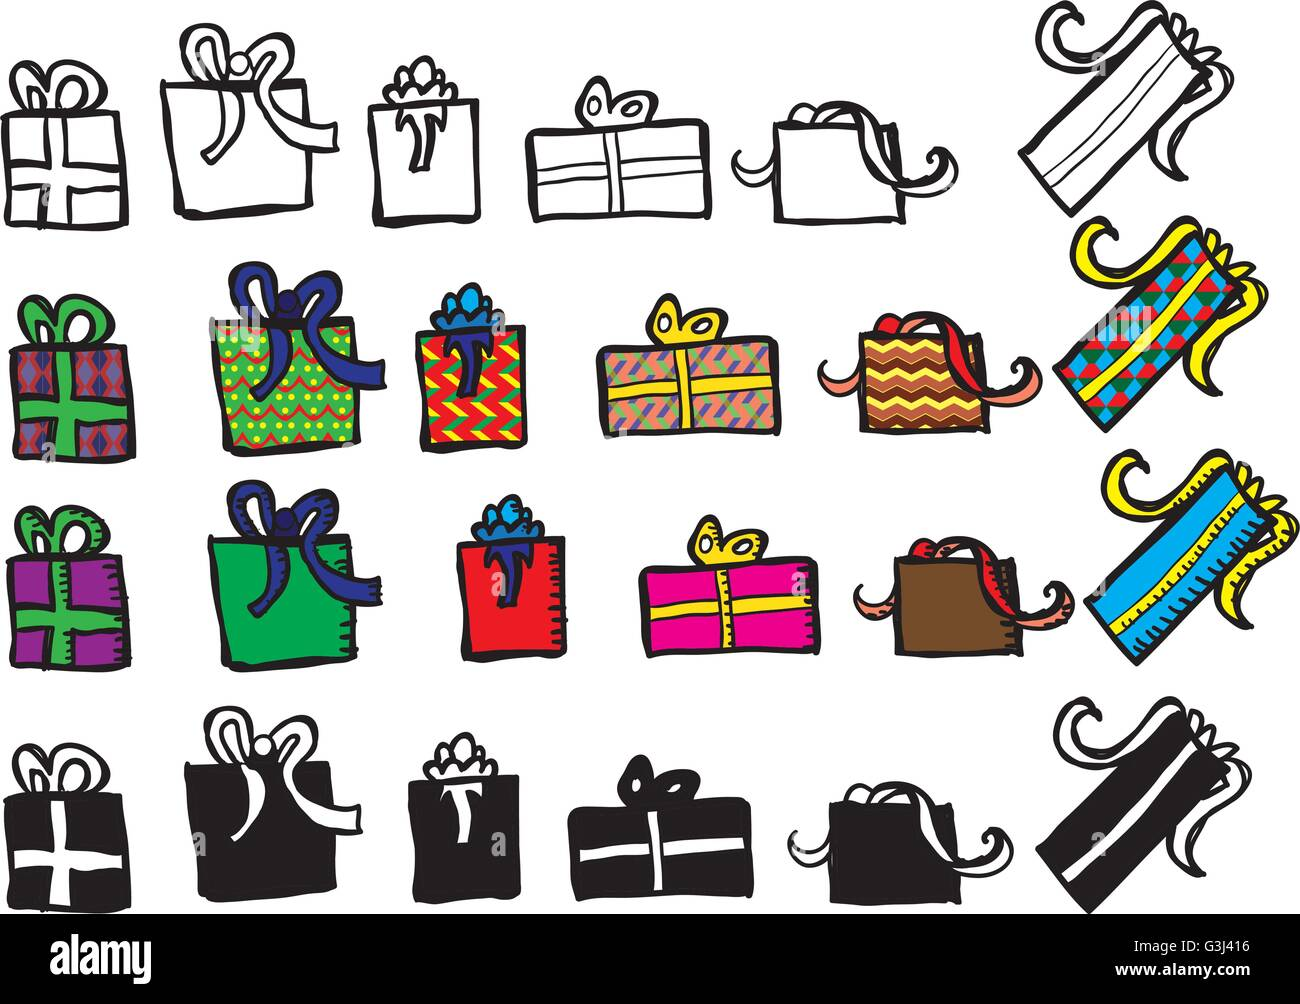 Present doodle sheet with outline, colored and silhouette layers - Stock Vector